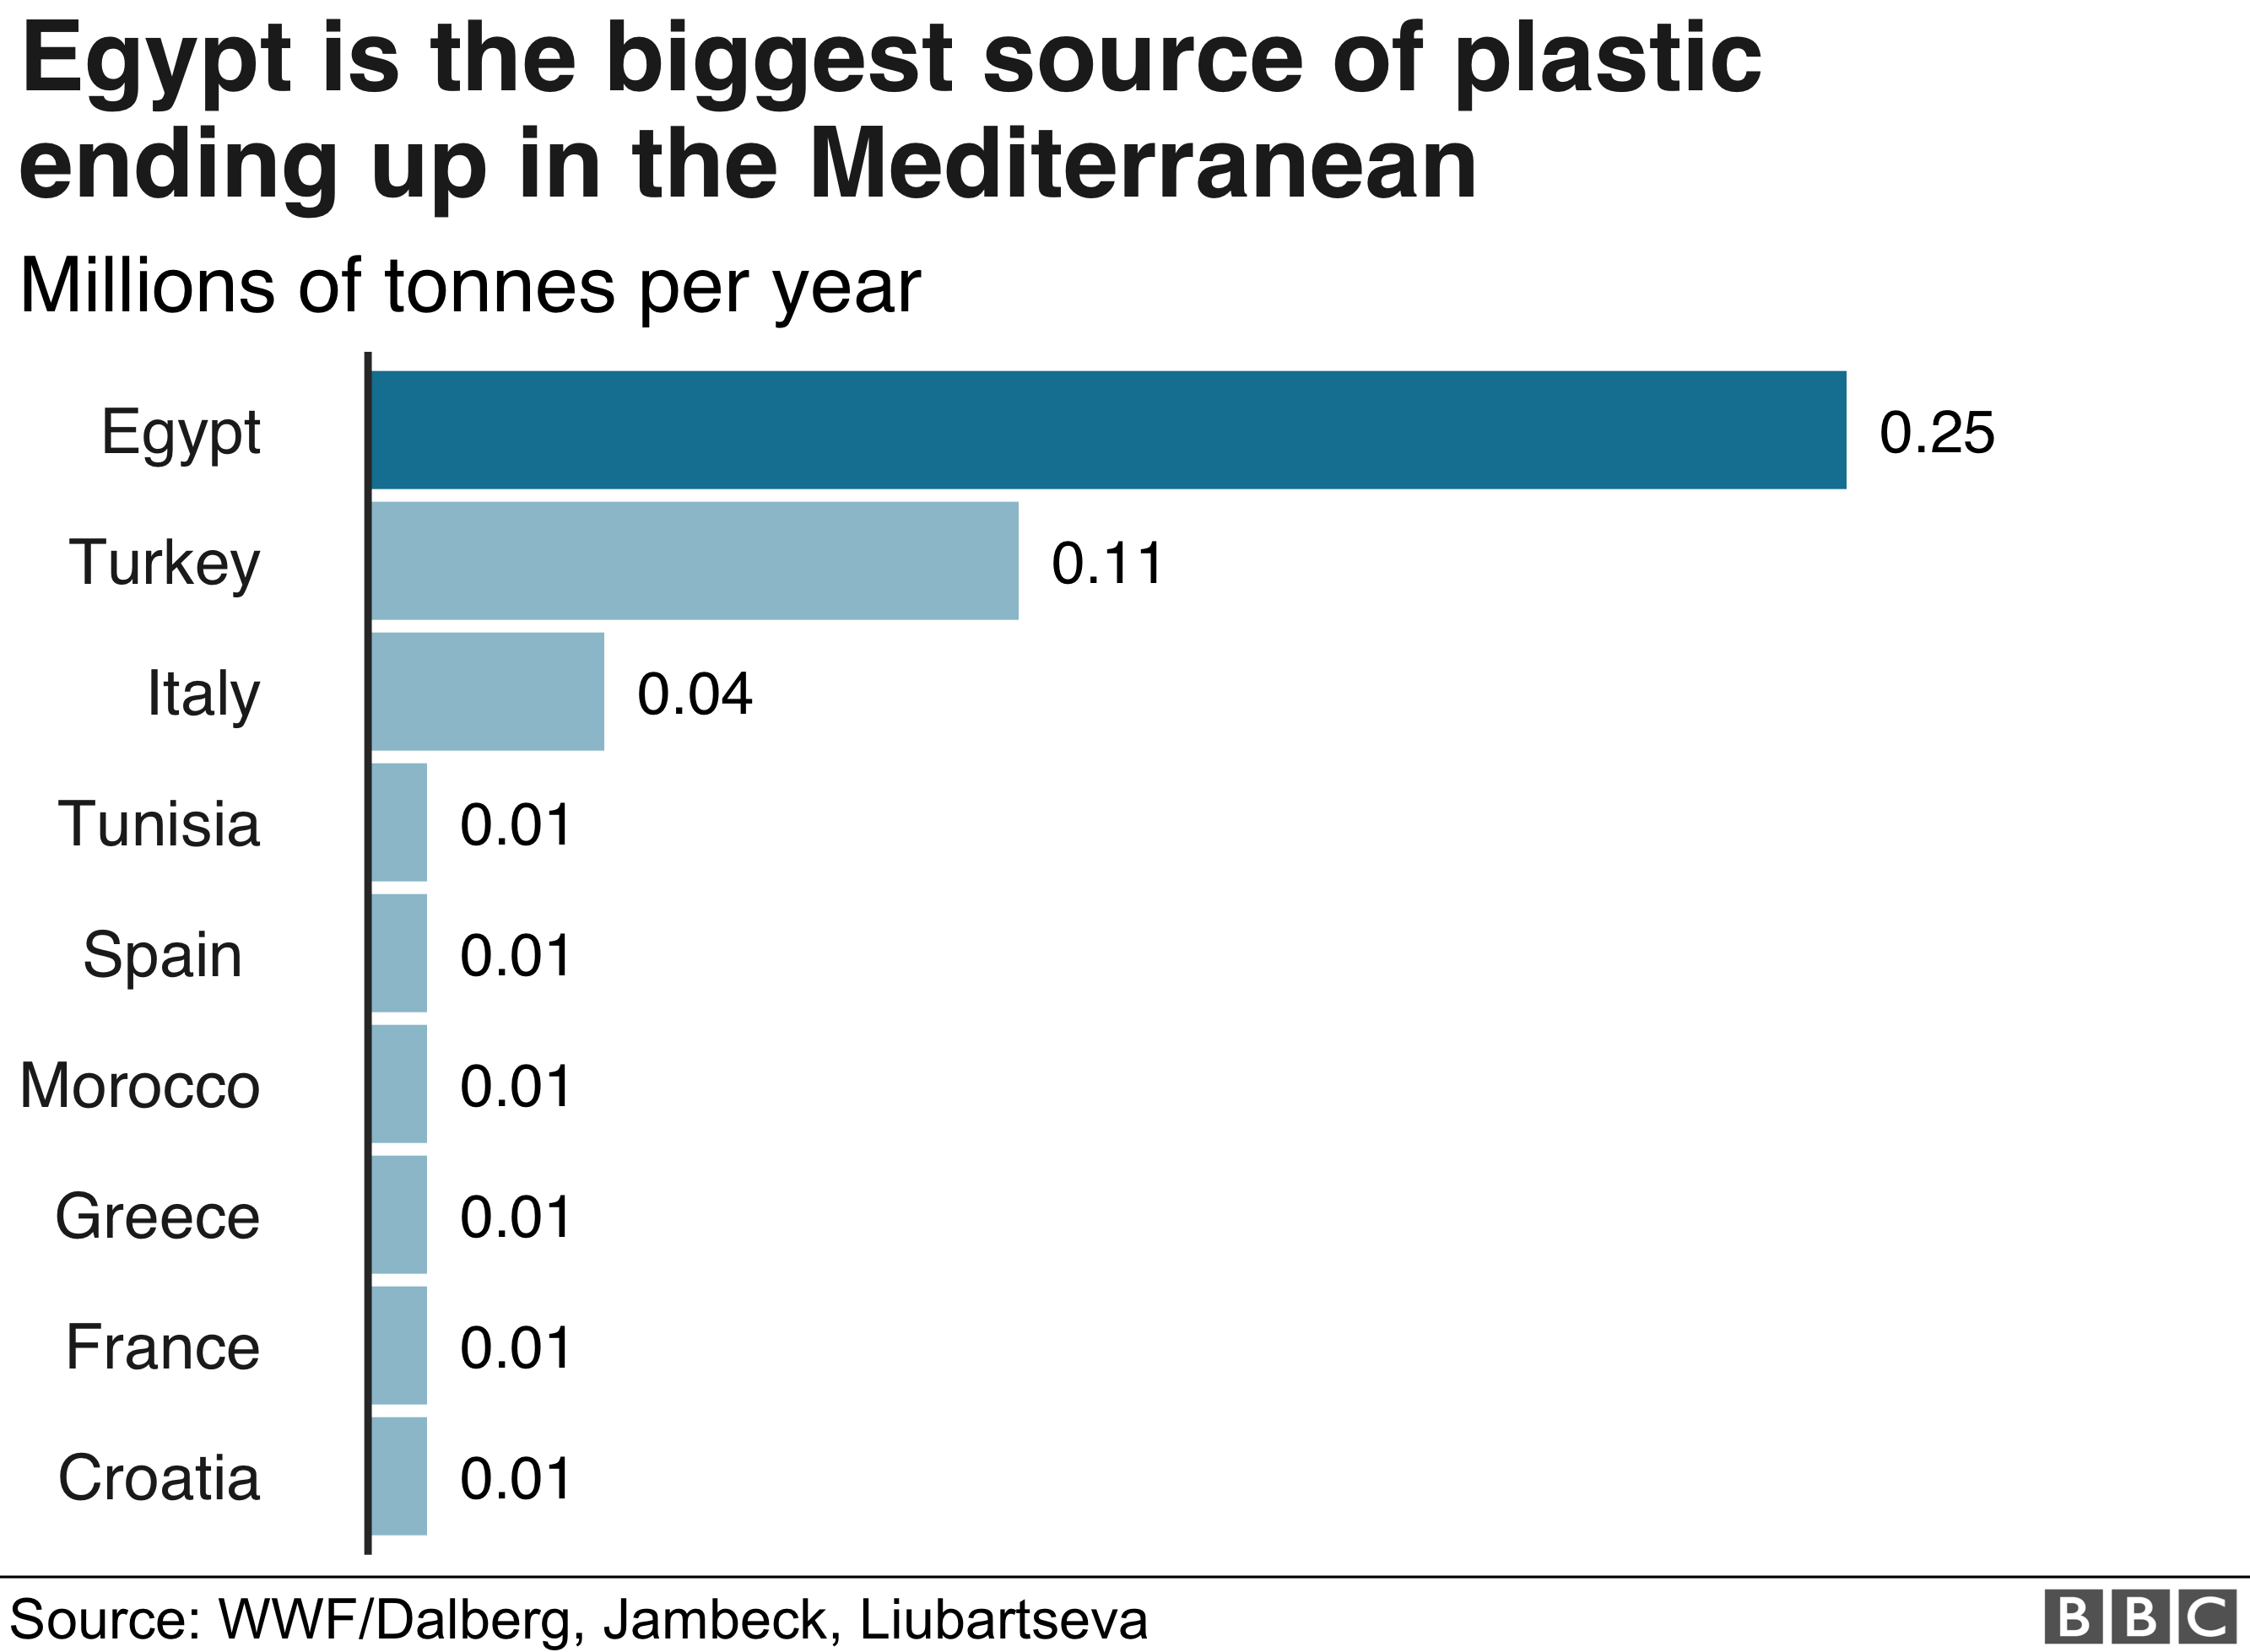 _107288187_plastic-nc - Mediterranean plastic pollution hotspots highlighted in report - World Daily News